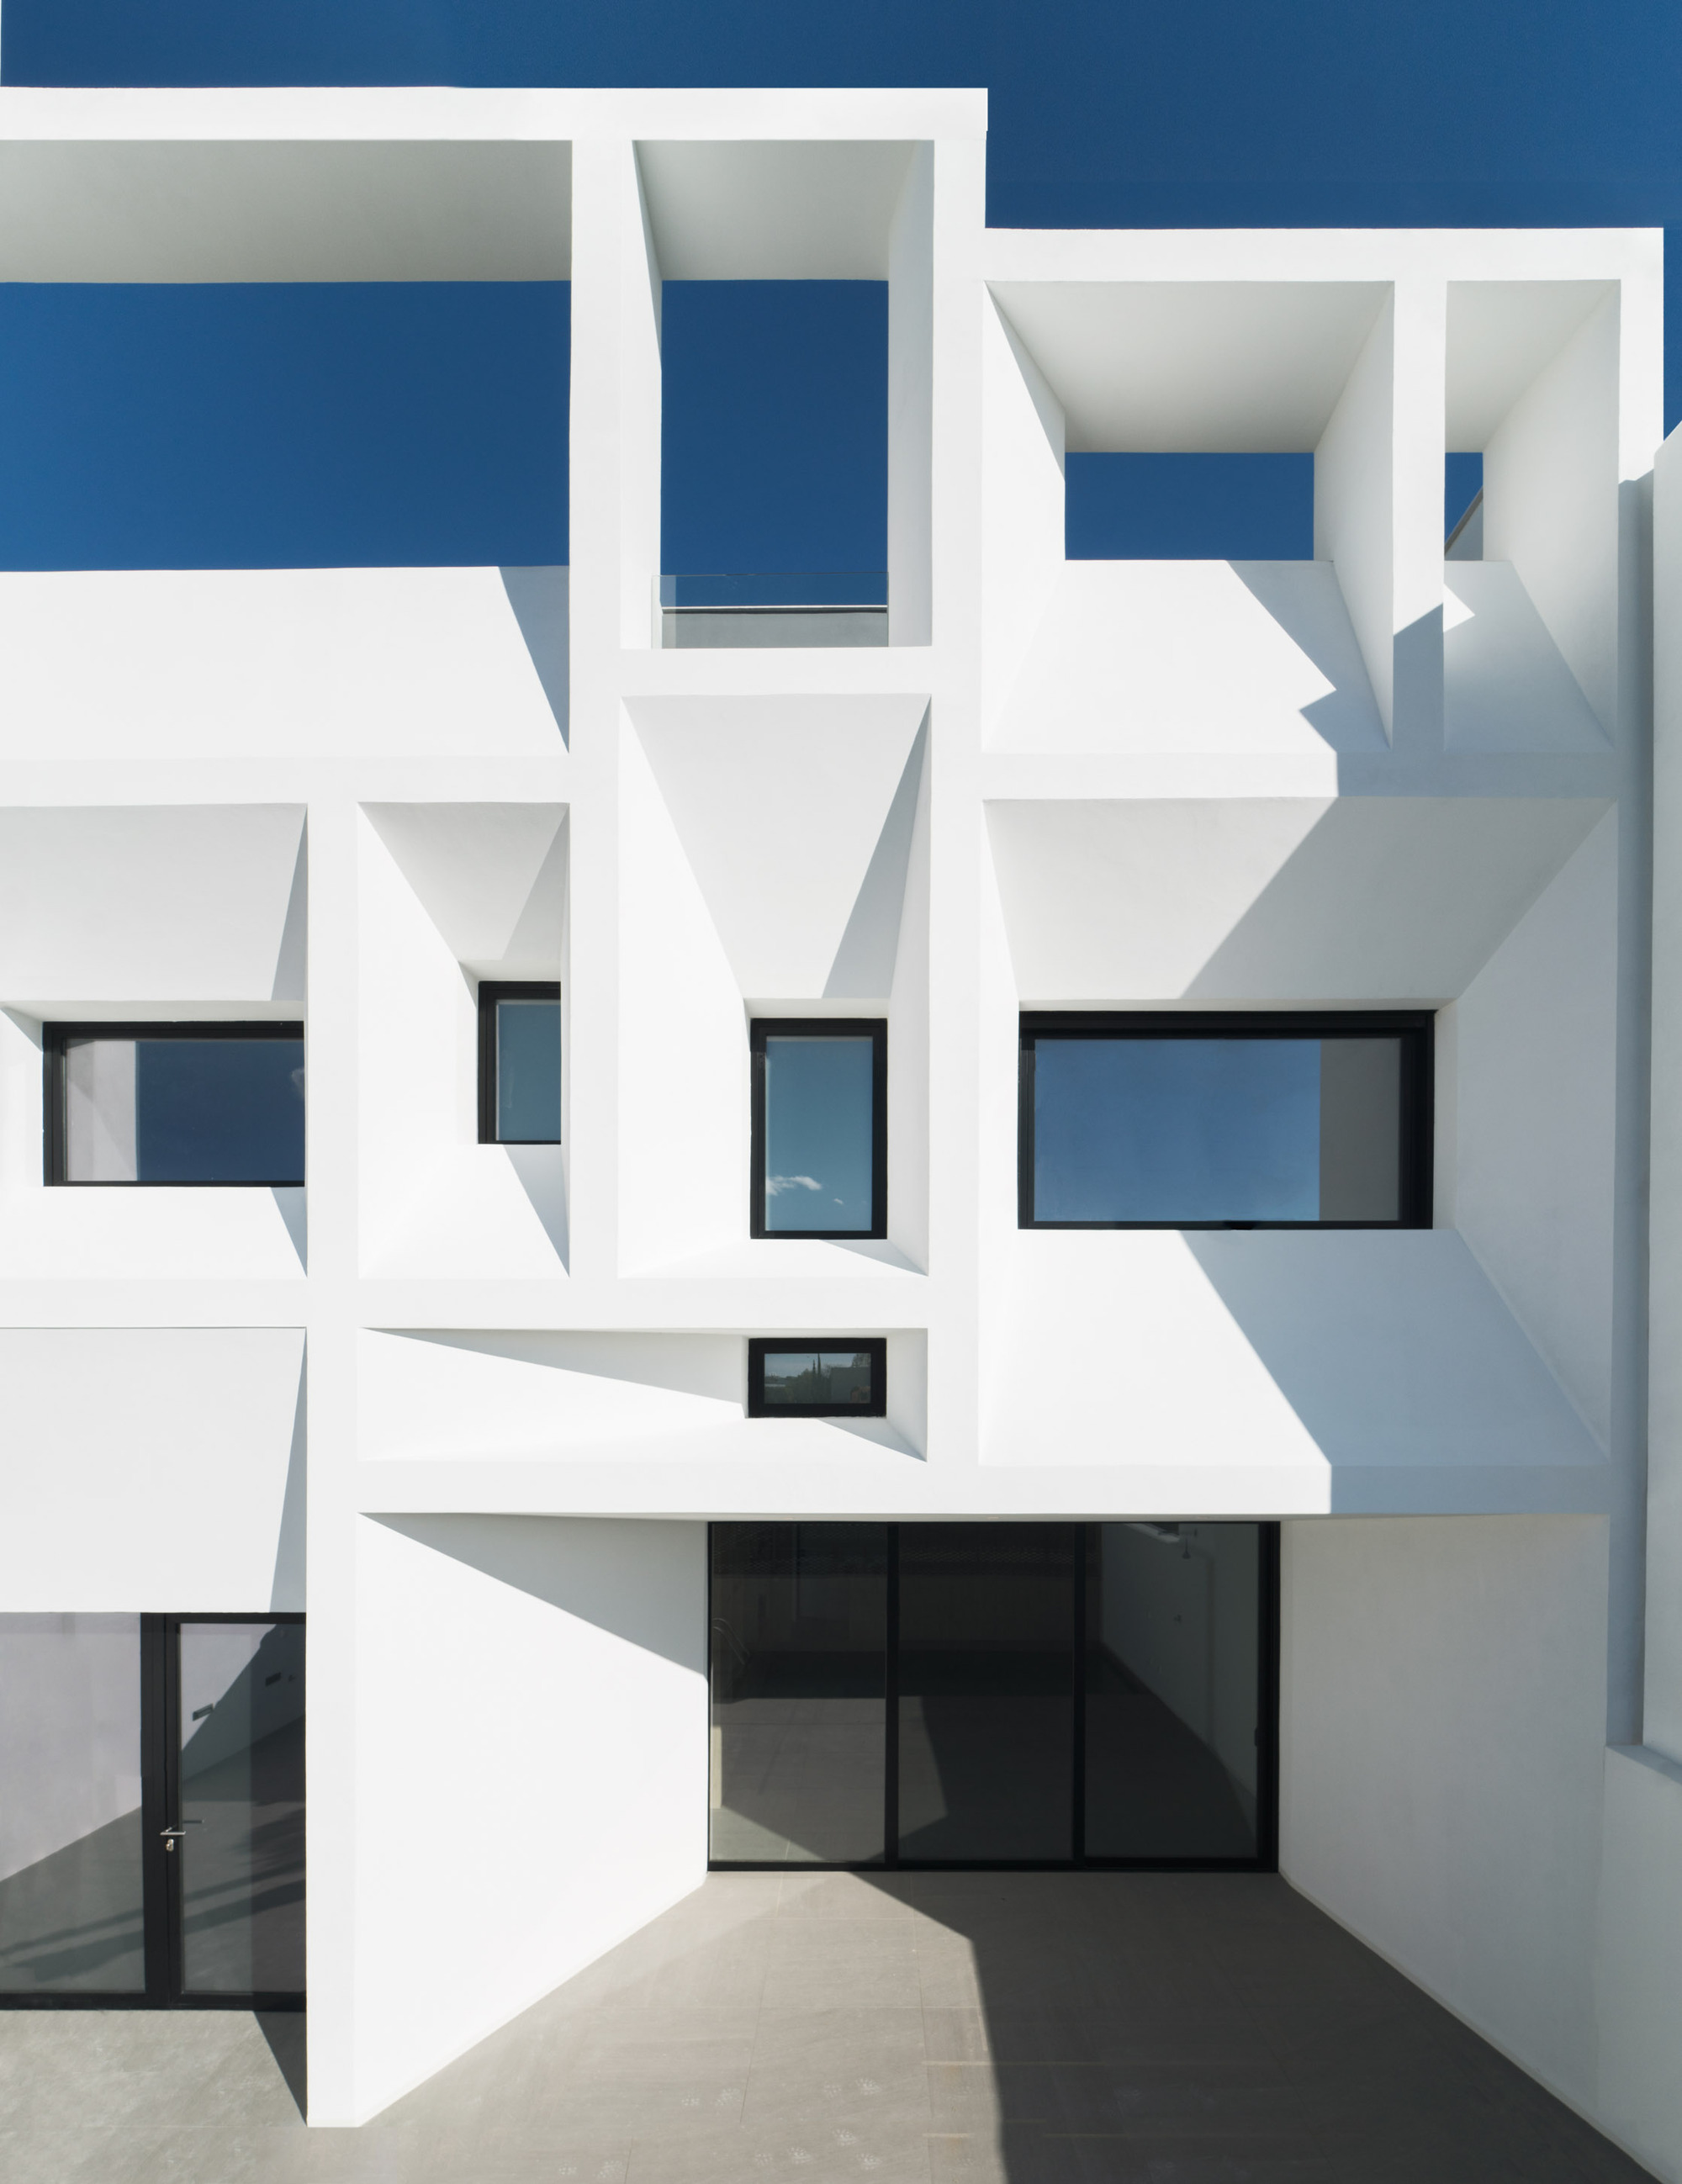 Gallery of brise soleil house rub n muedra estudio de for Estudio arquitectura